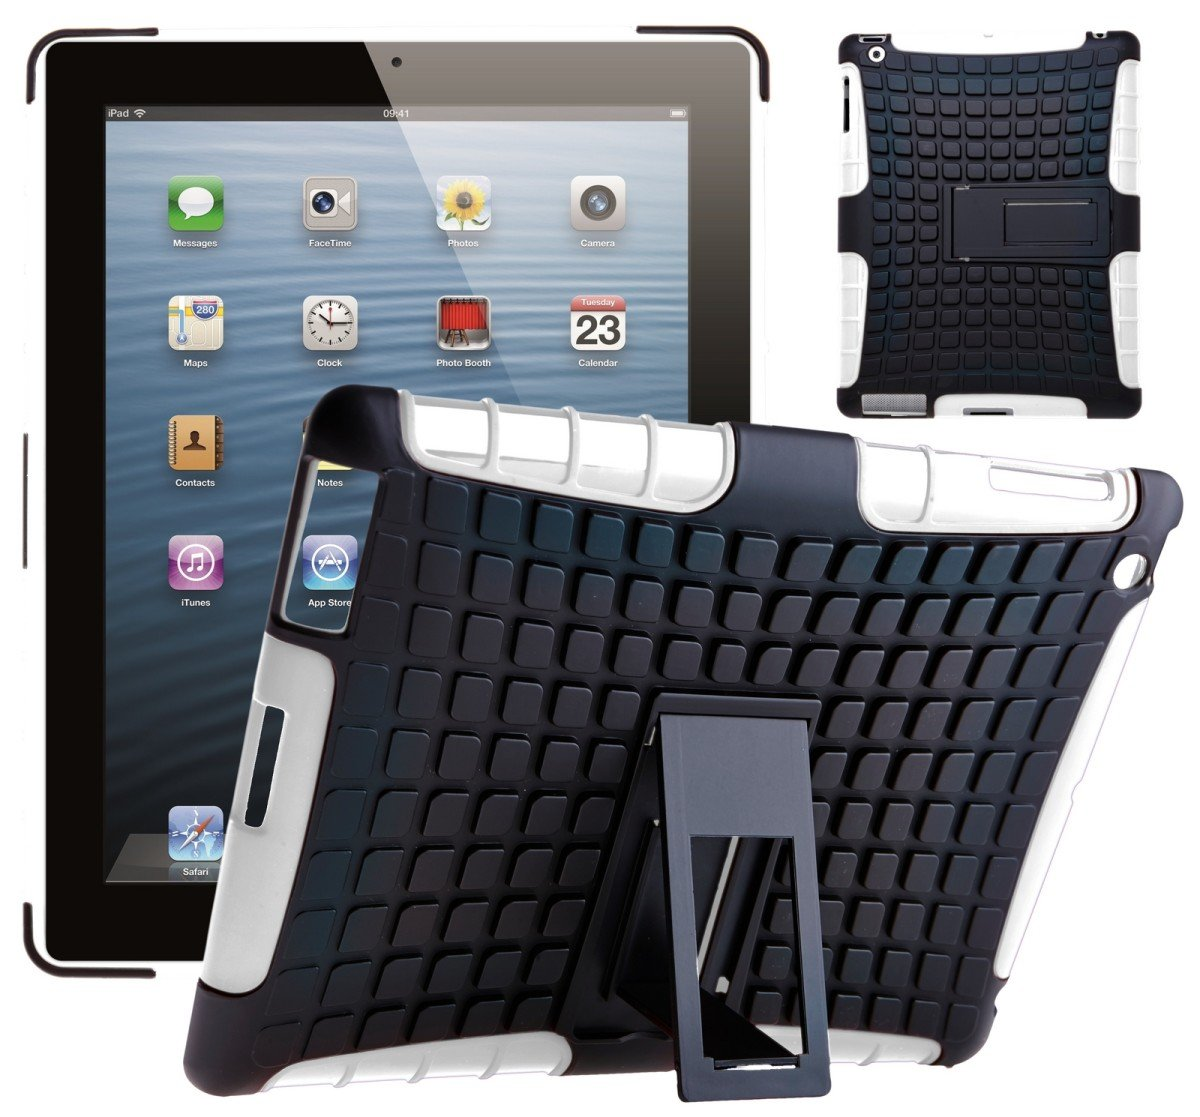 G-Shield-Coque-Antichoc-Etui-Protection-Housse-Hybride-Pour-Apple-iPad-2-3-4